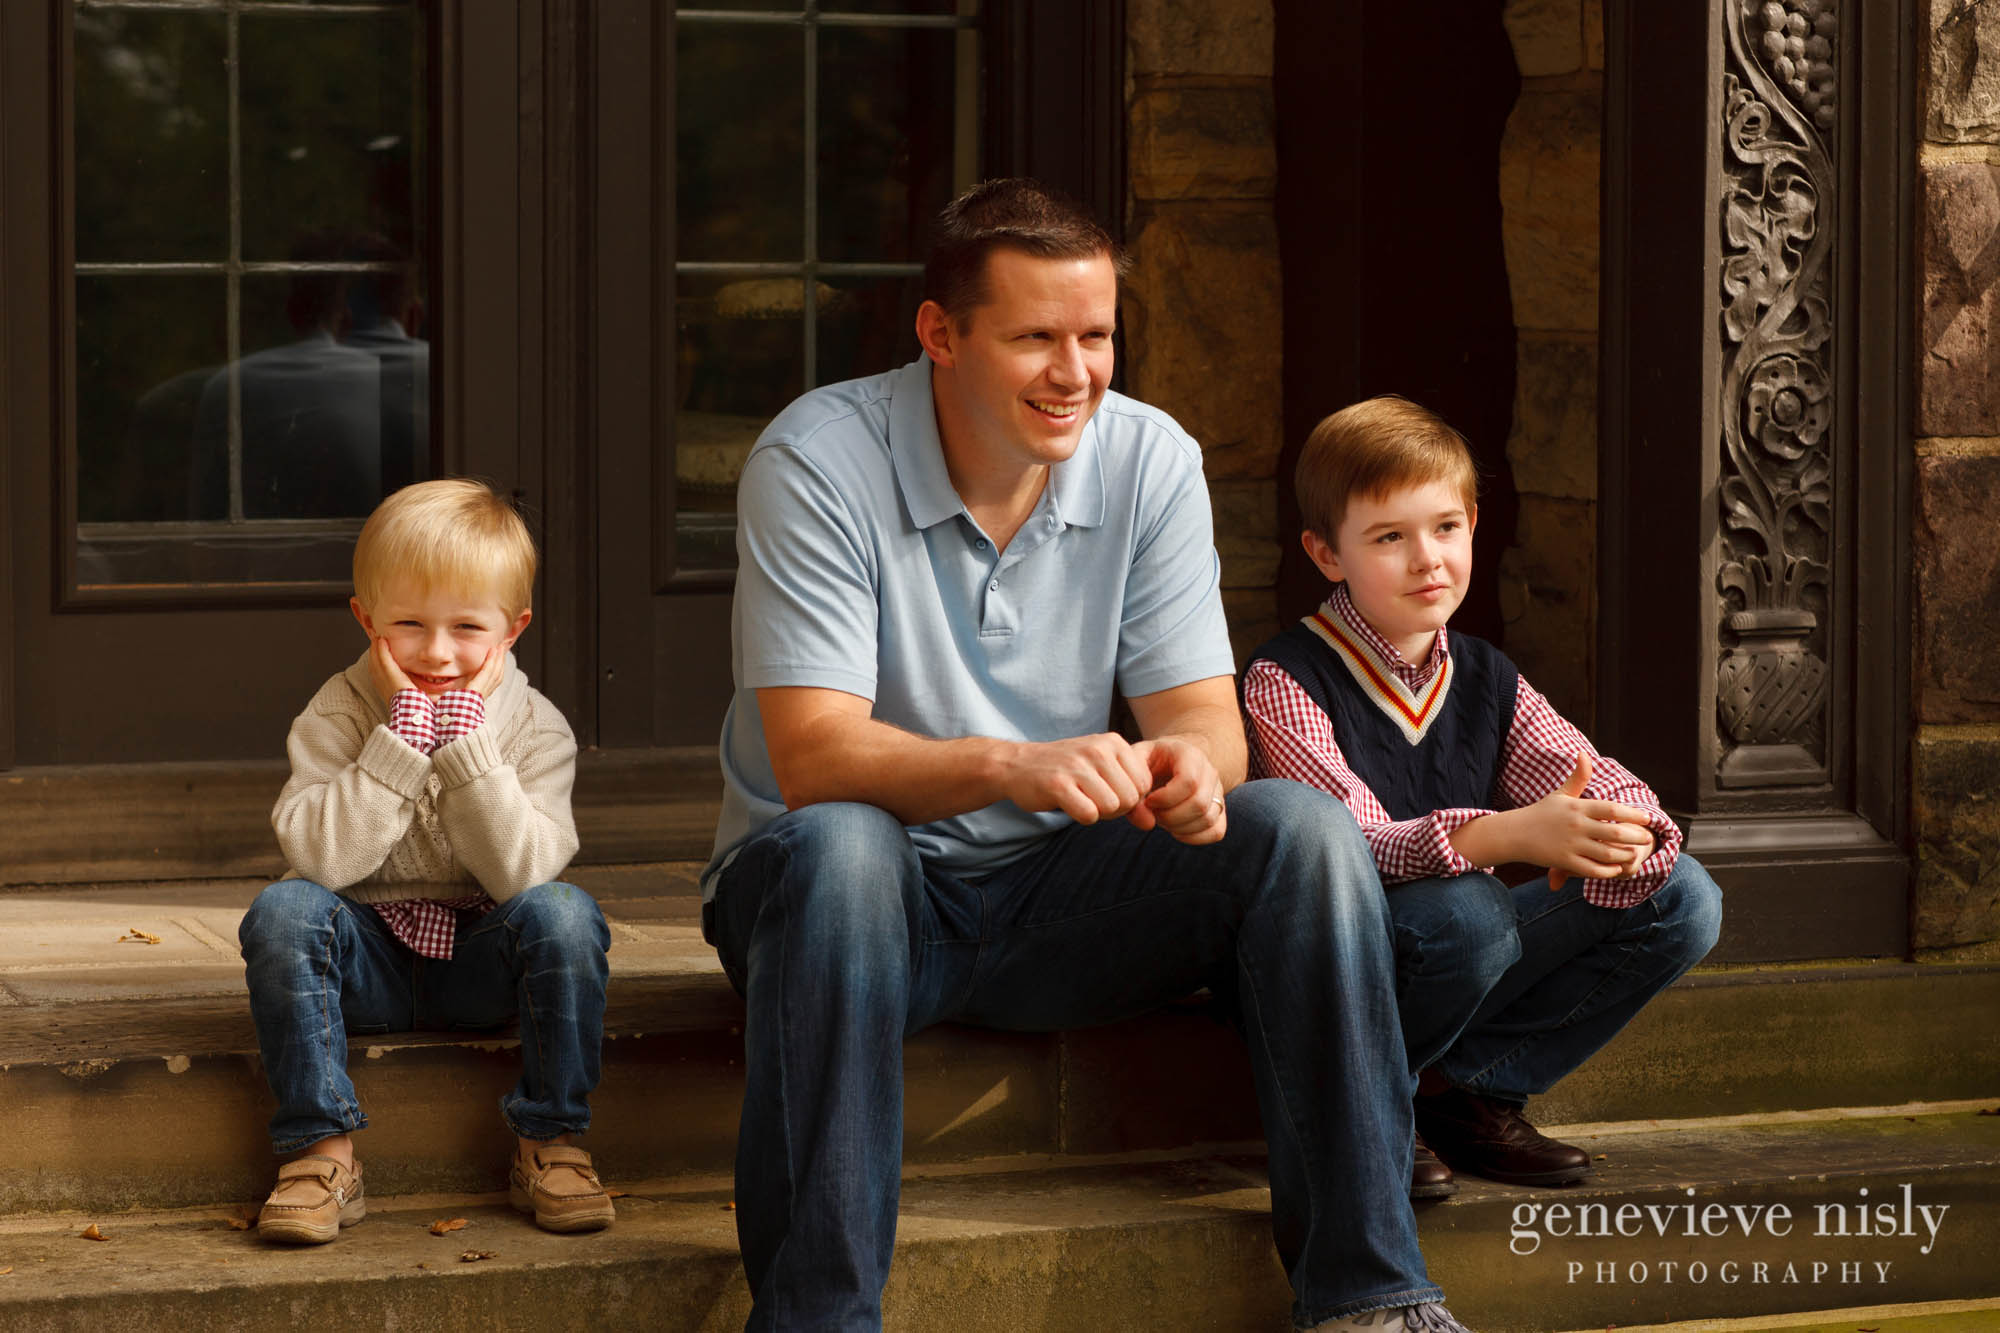 Copyright Genevieve Nisly Photography, Fall, Family, Portraits